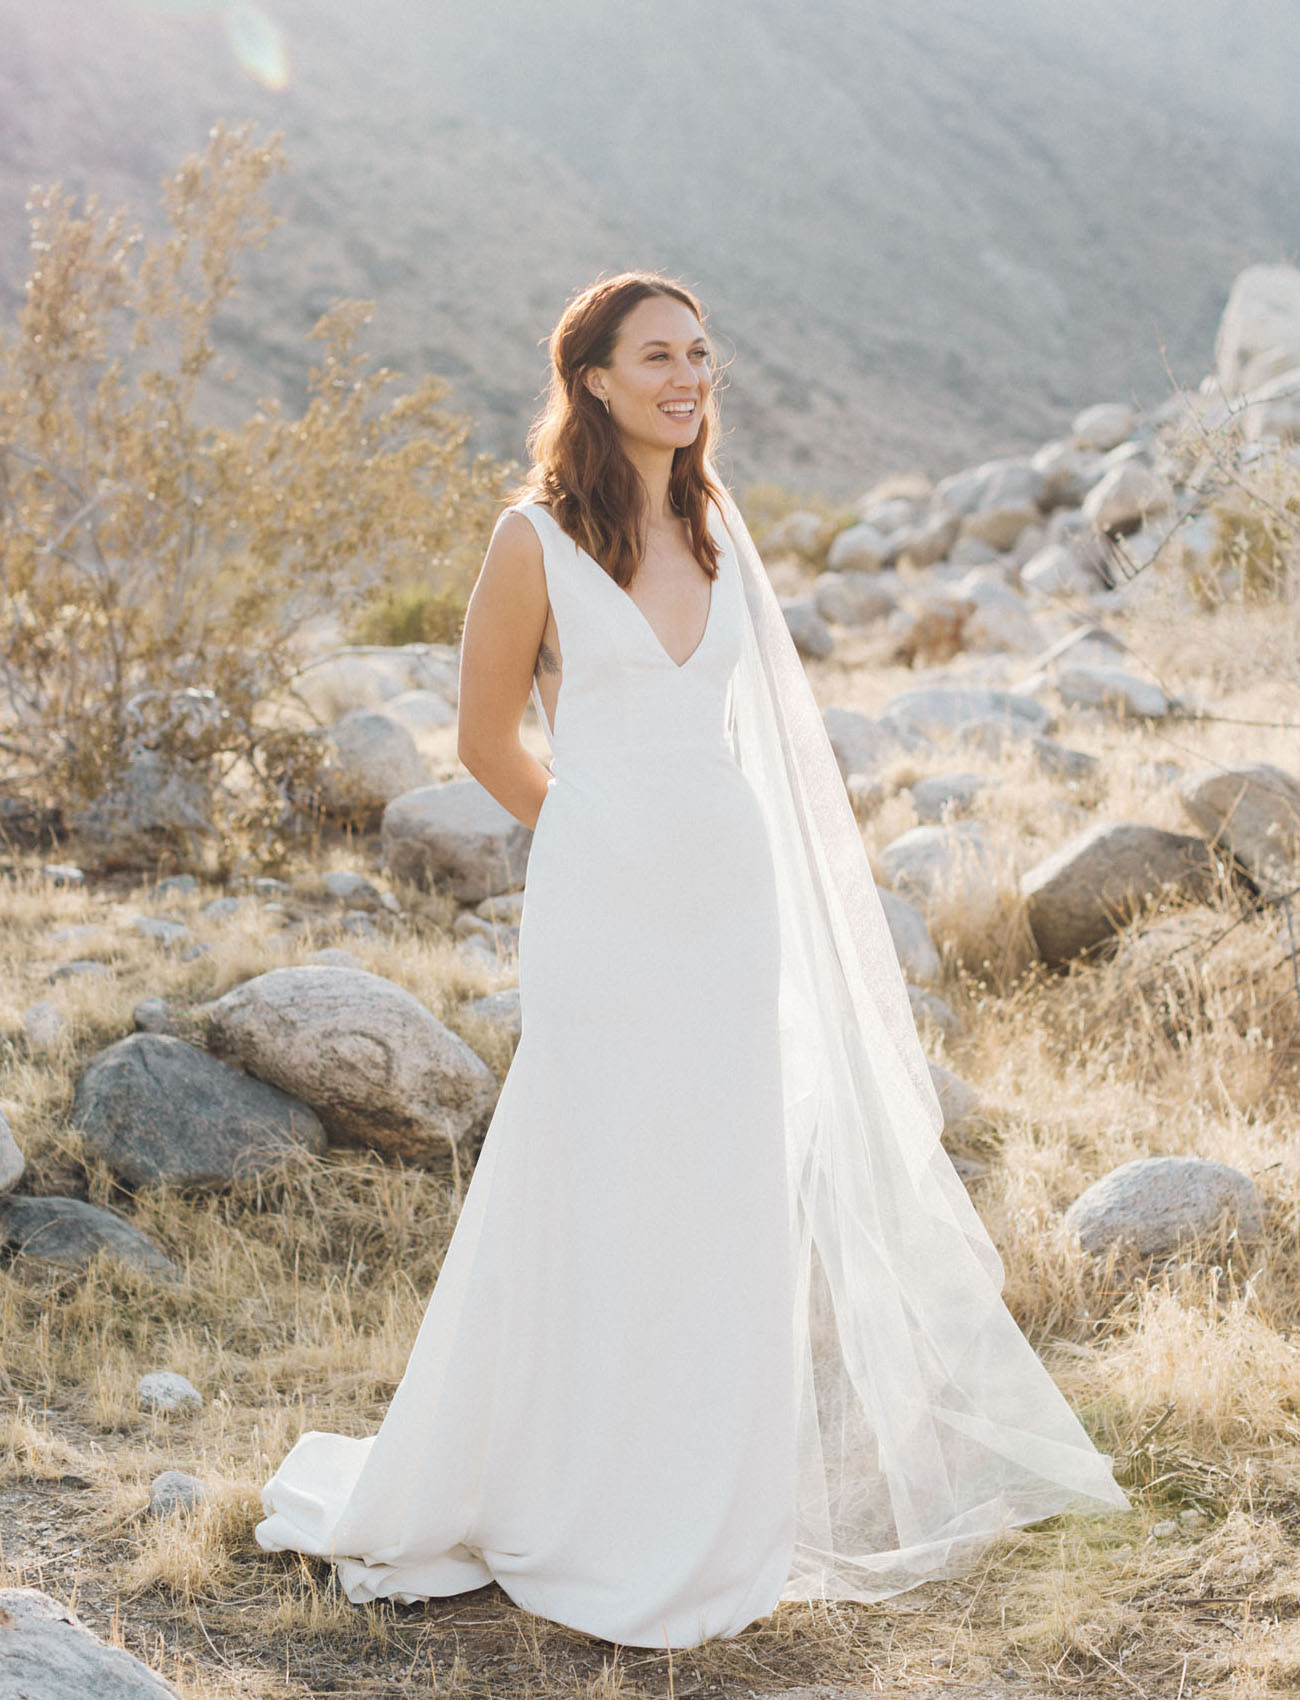 The bride was wearign a plain minimalist wedding dress with a deep V neckline and a long veil